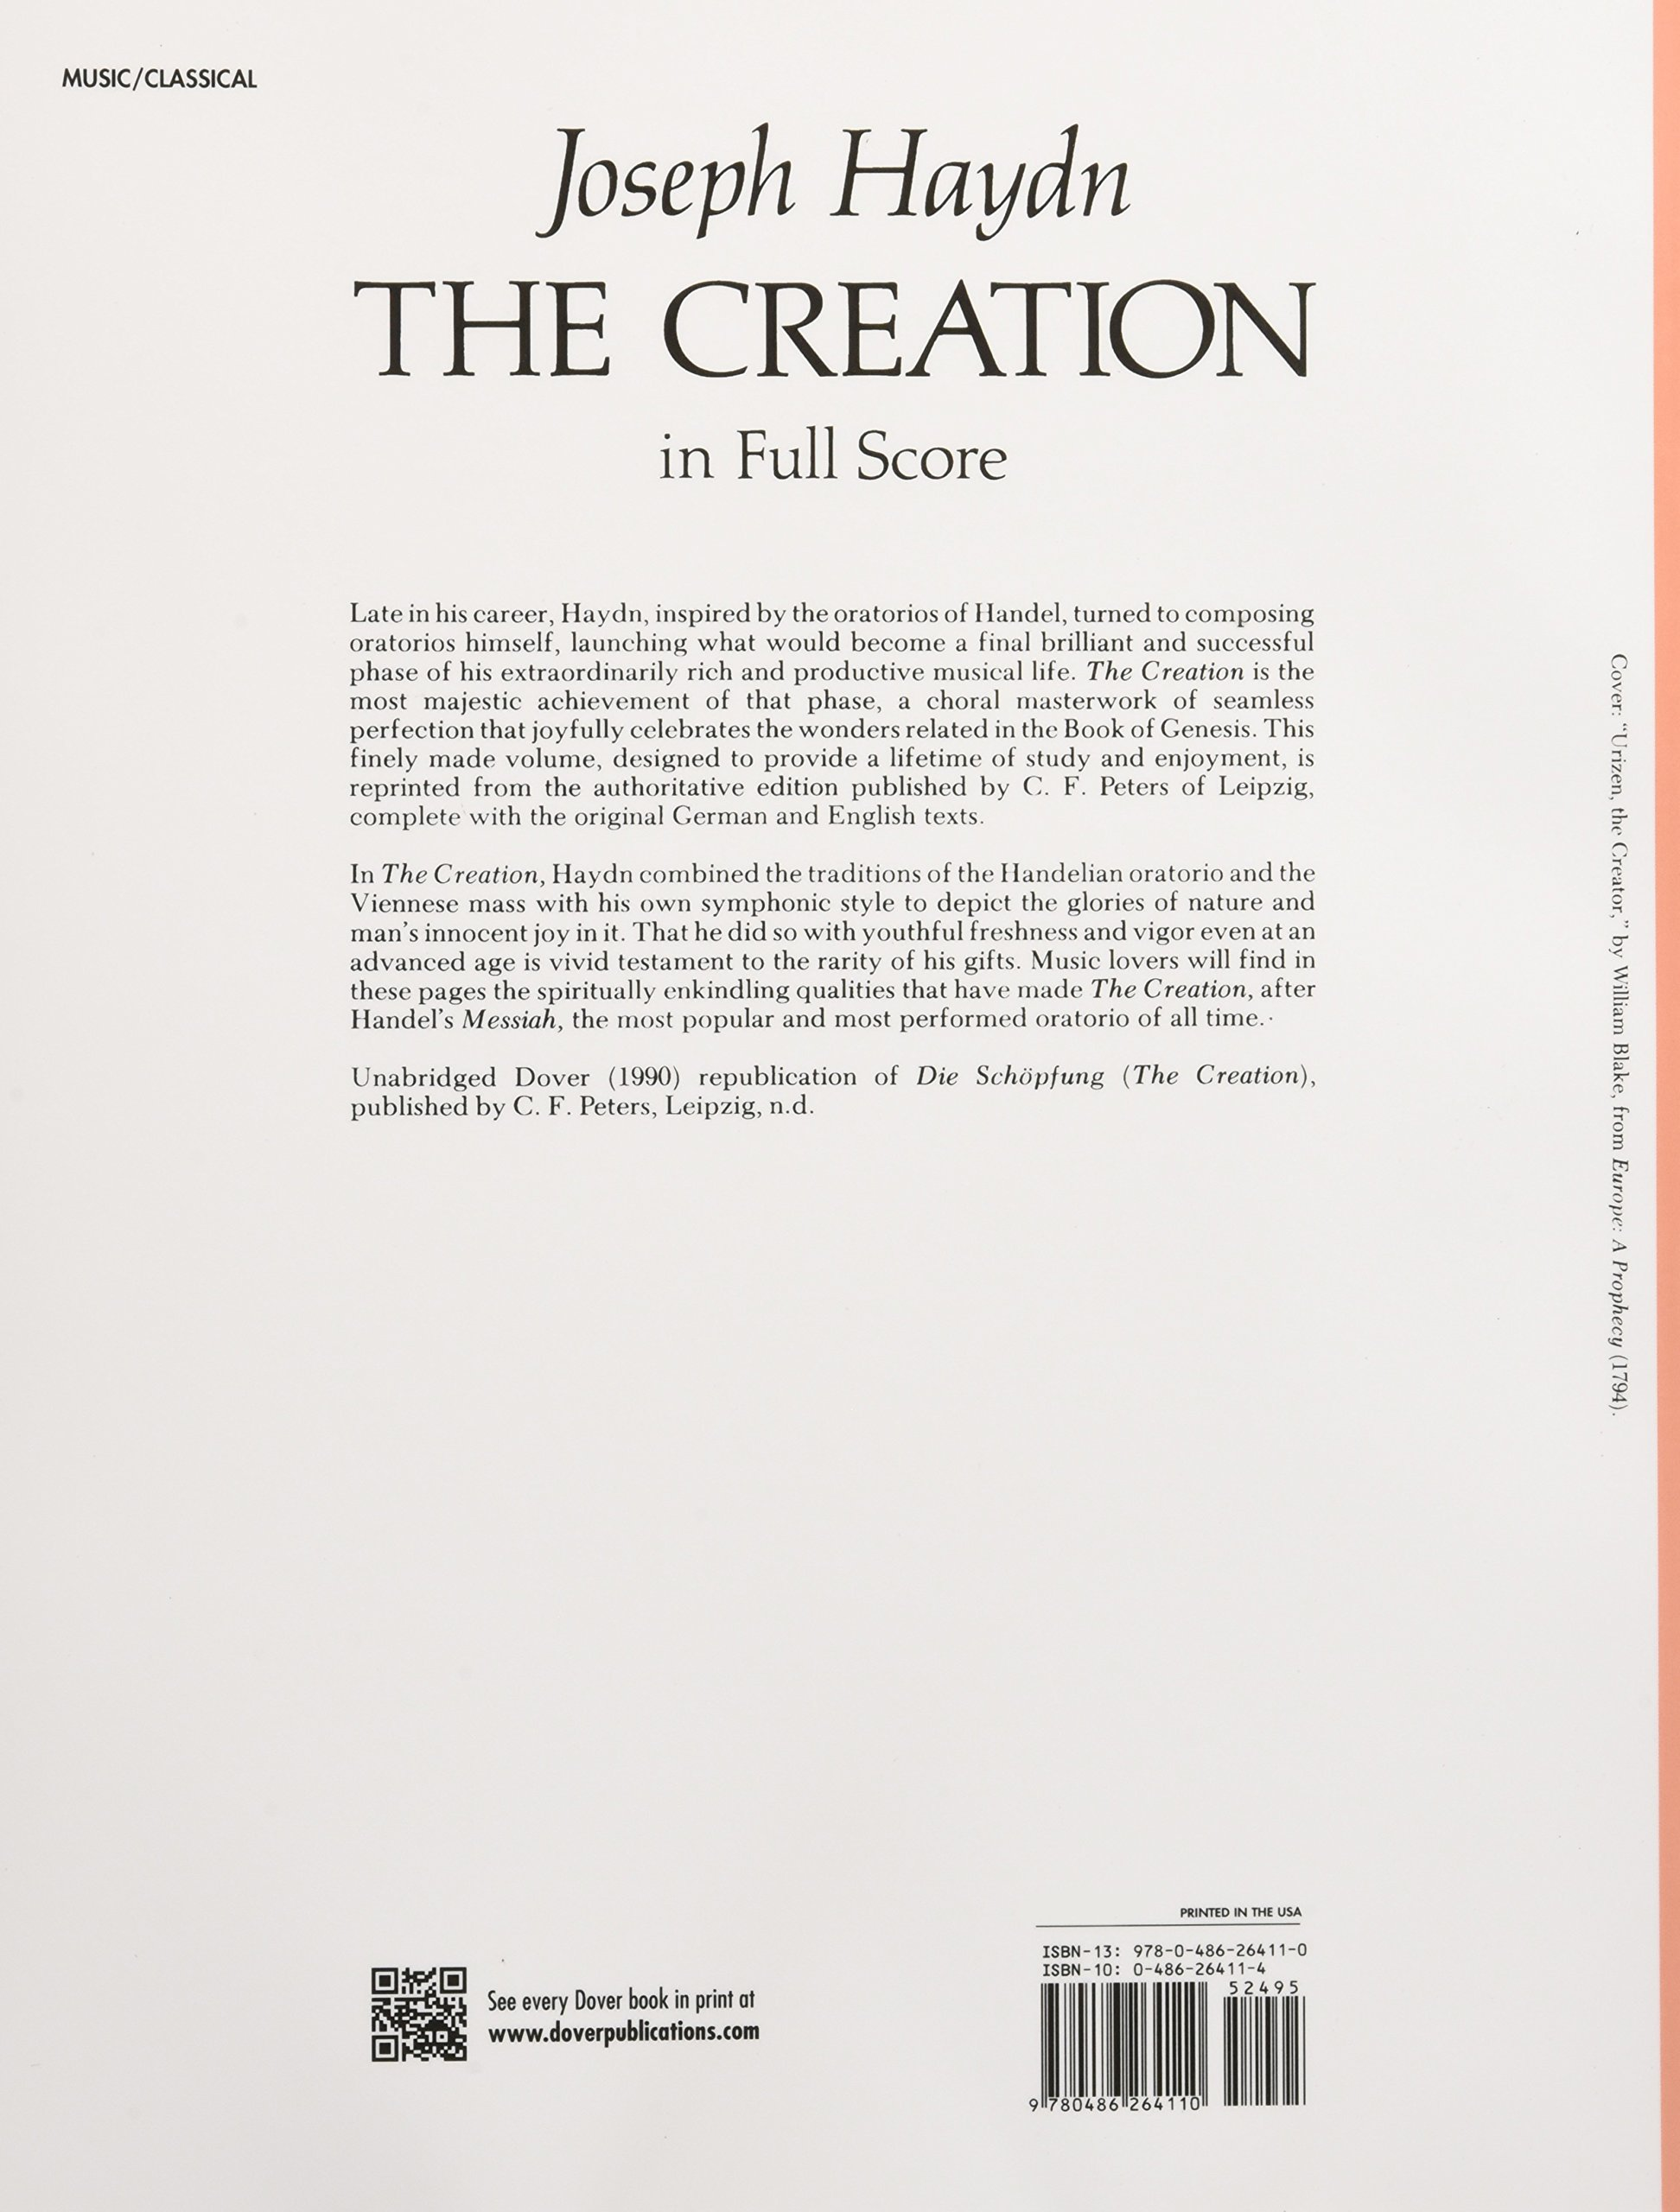 The Creation in Full Score (Dover Music Scores): Joseph Haydn:  9780486264110: Amazon.com: Books